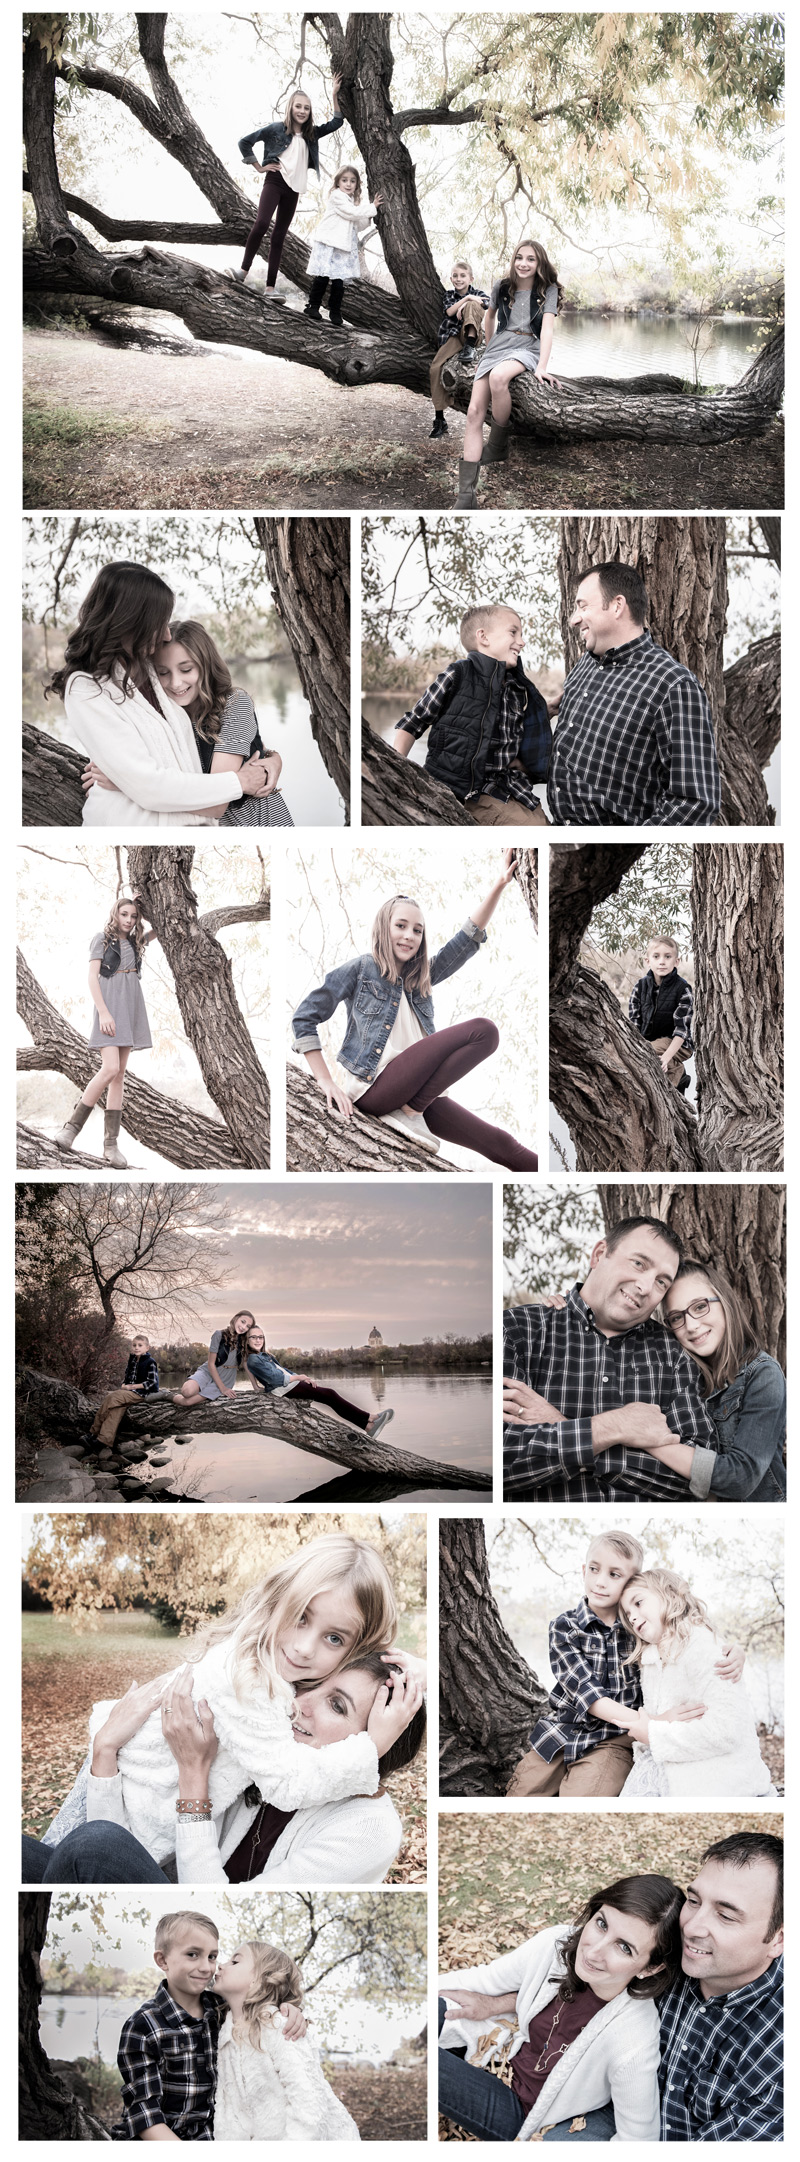 free-lense-photo-family-photo-sessions-04.jpg